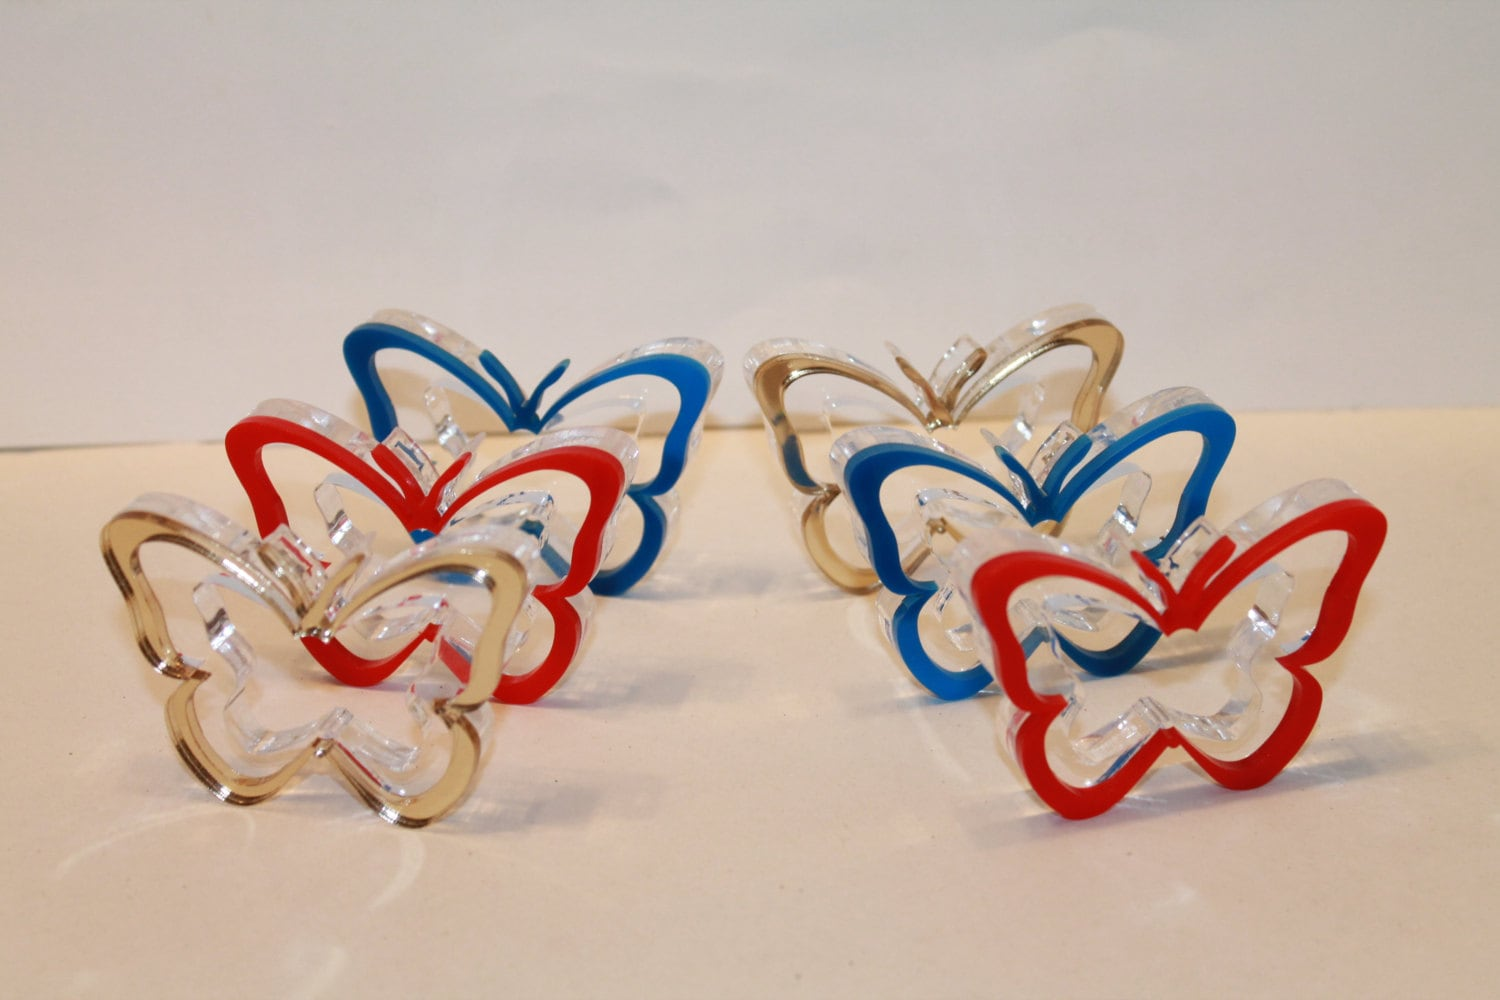 Napkin Ring Holders Napkin Rings In Red Blue And Gold Butterfly Spring Decor Set Of 6 Spring Decorating Ideas Original Home Decoration